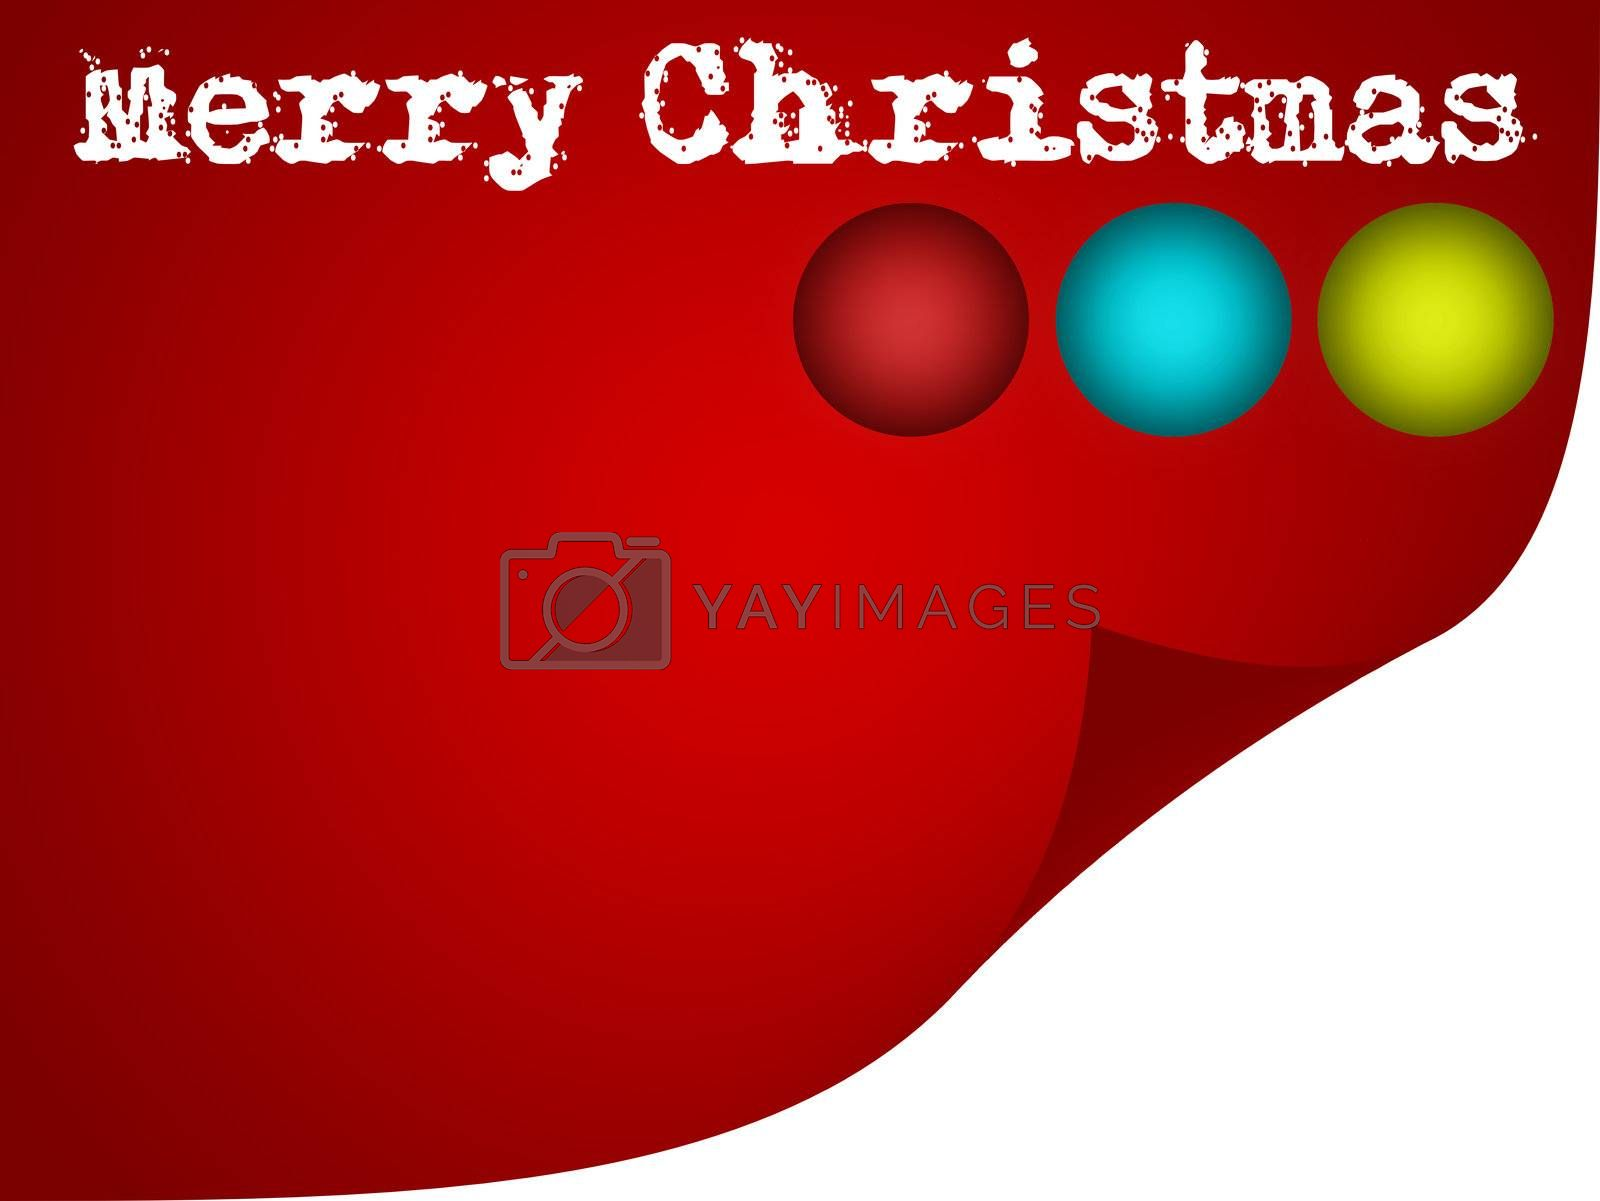 red merry christmas card, illustration